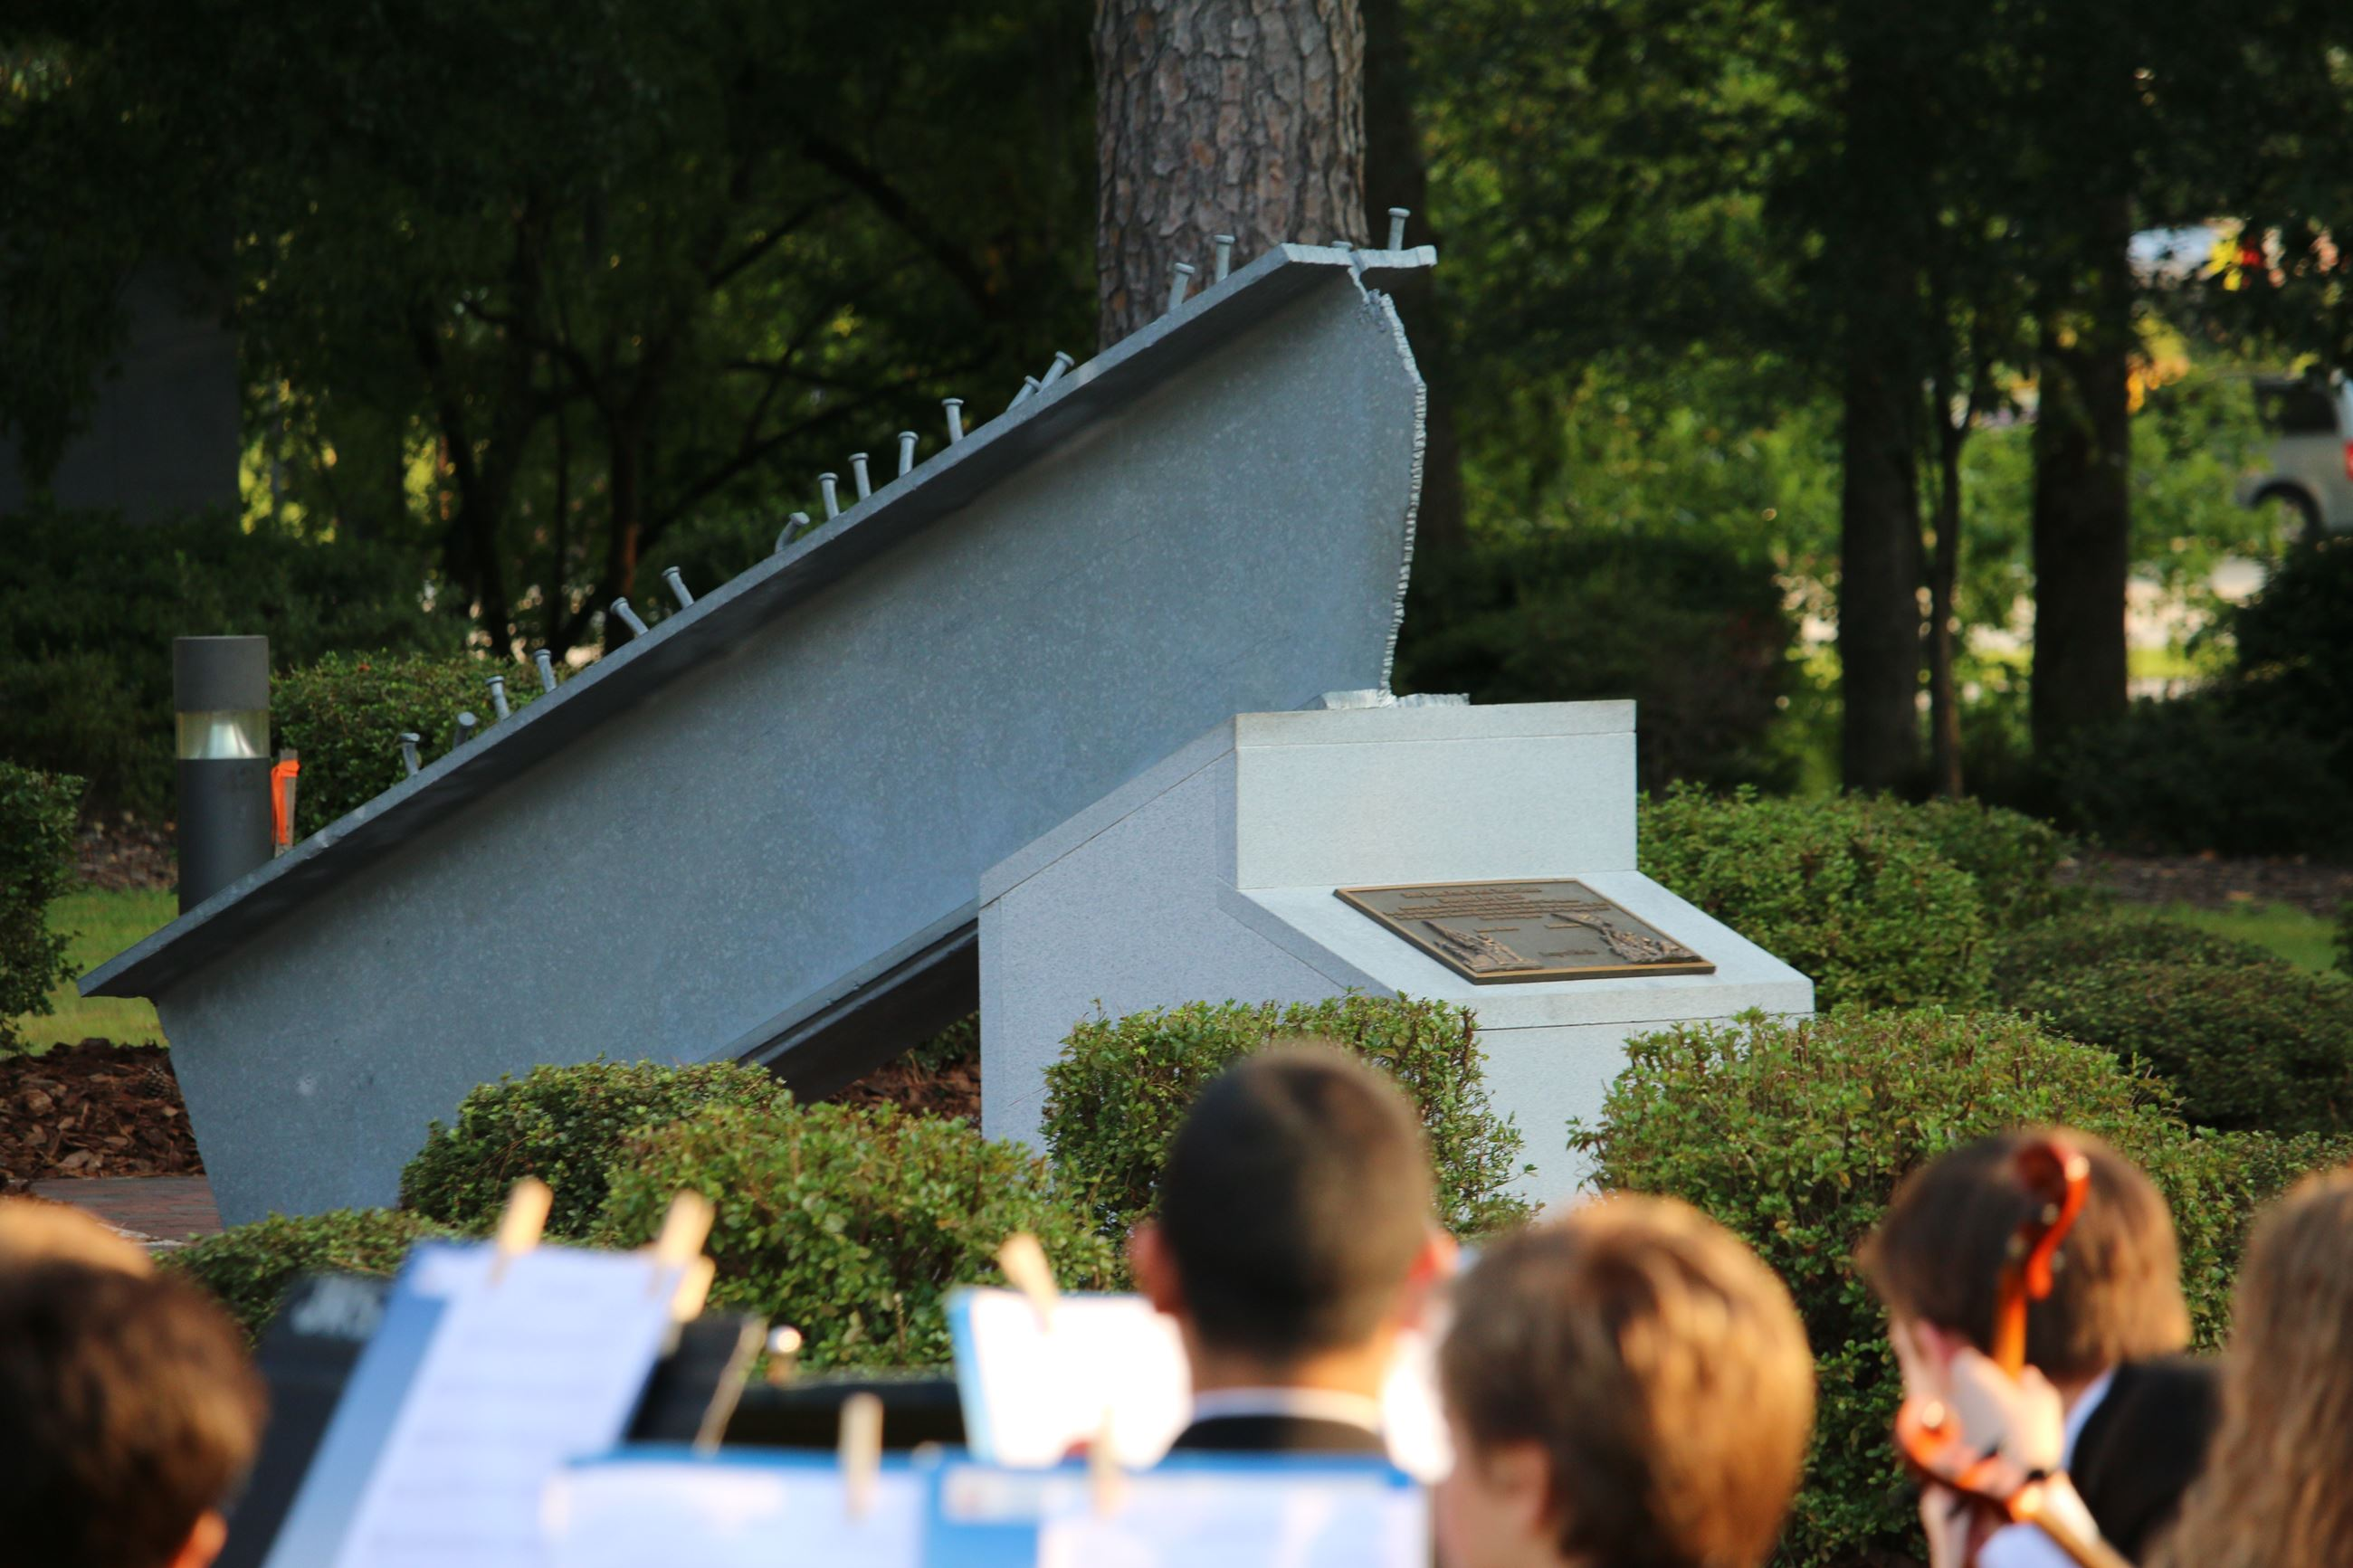 9/11 Memorial Beam, Patriot Day Observance